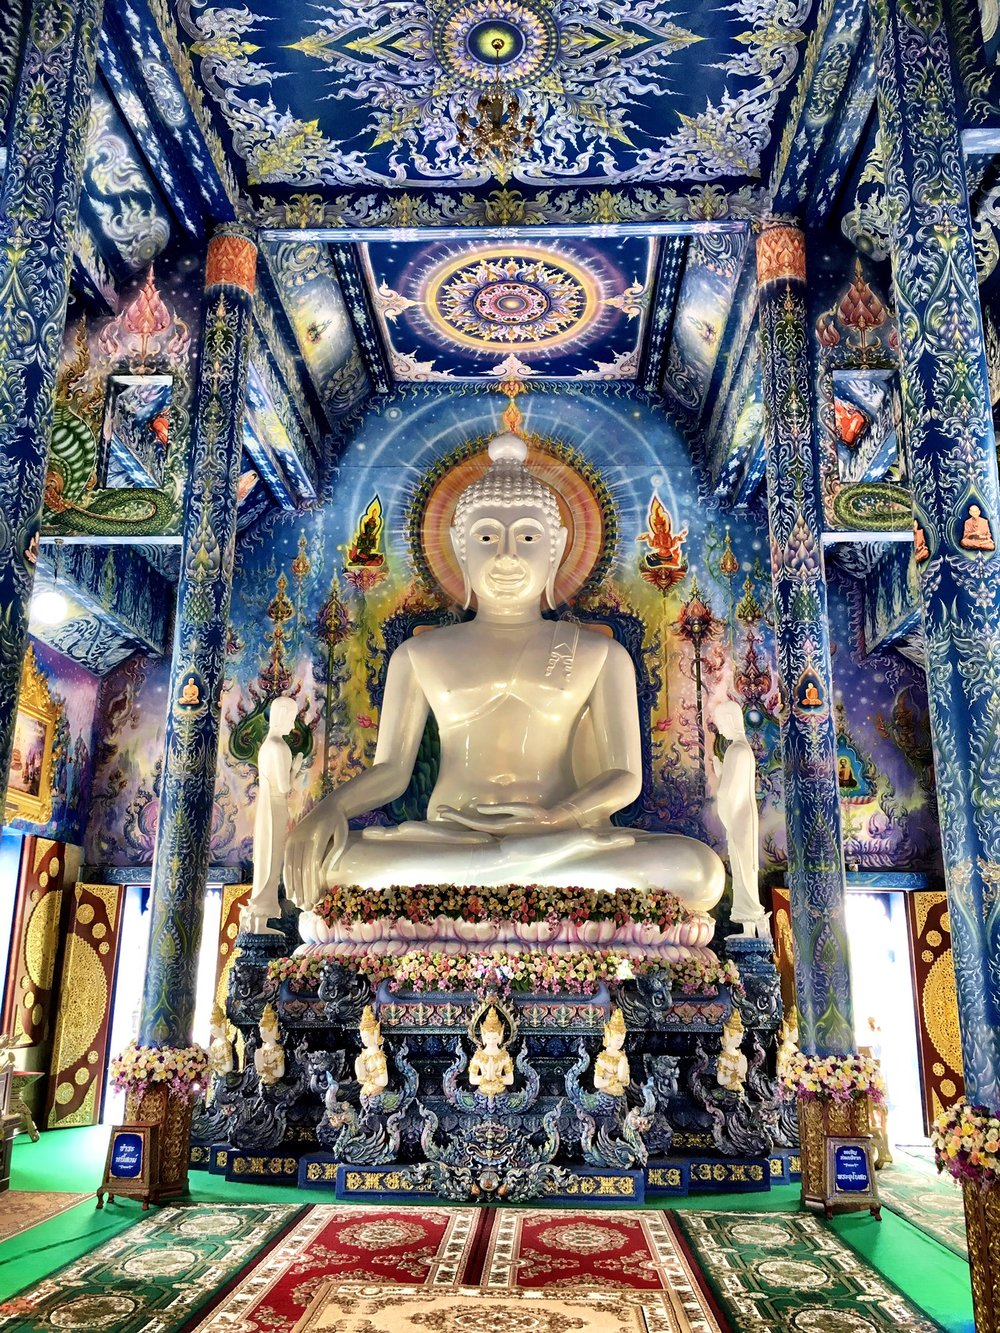 You can take pictures inside the Blue Temple — unlike in the White Temple